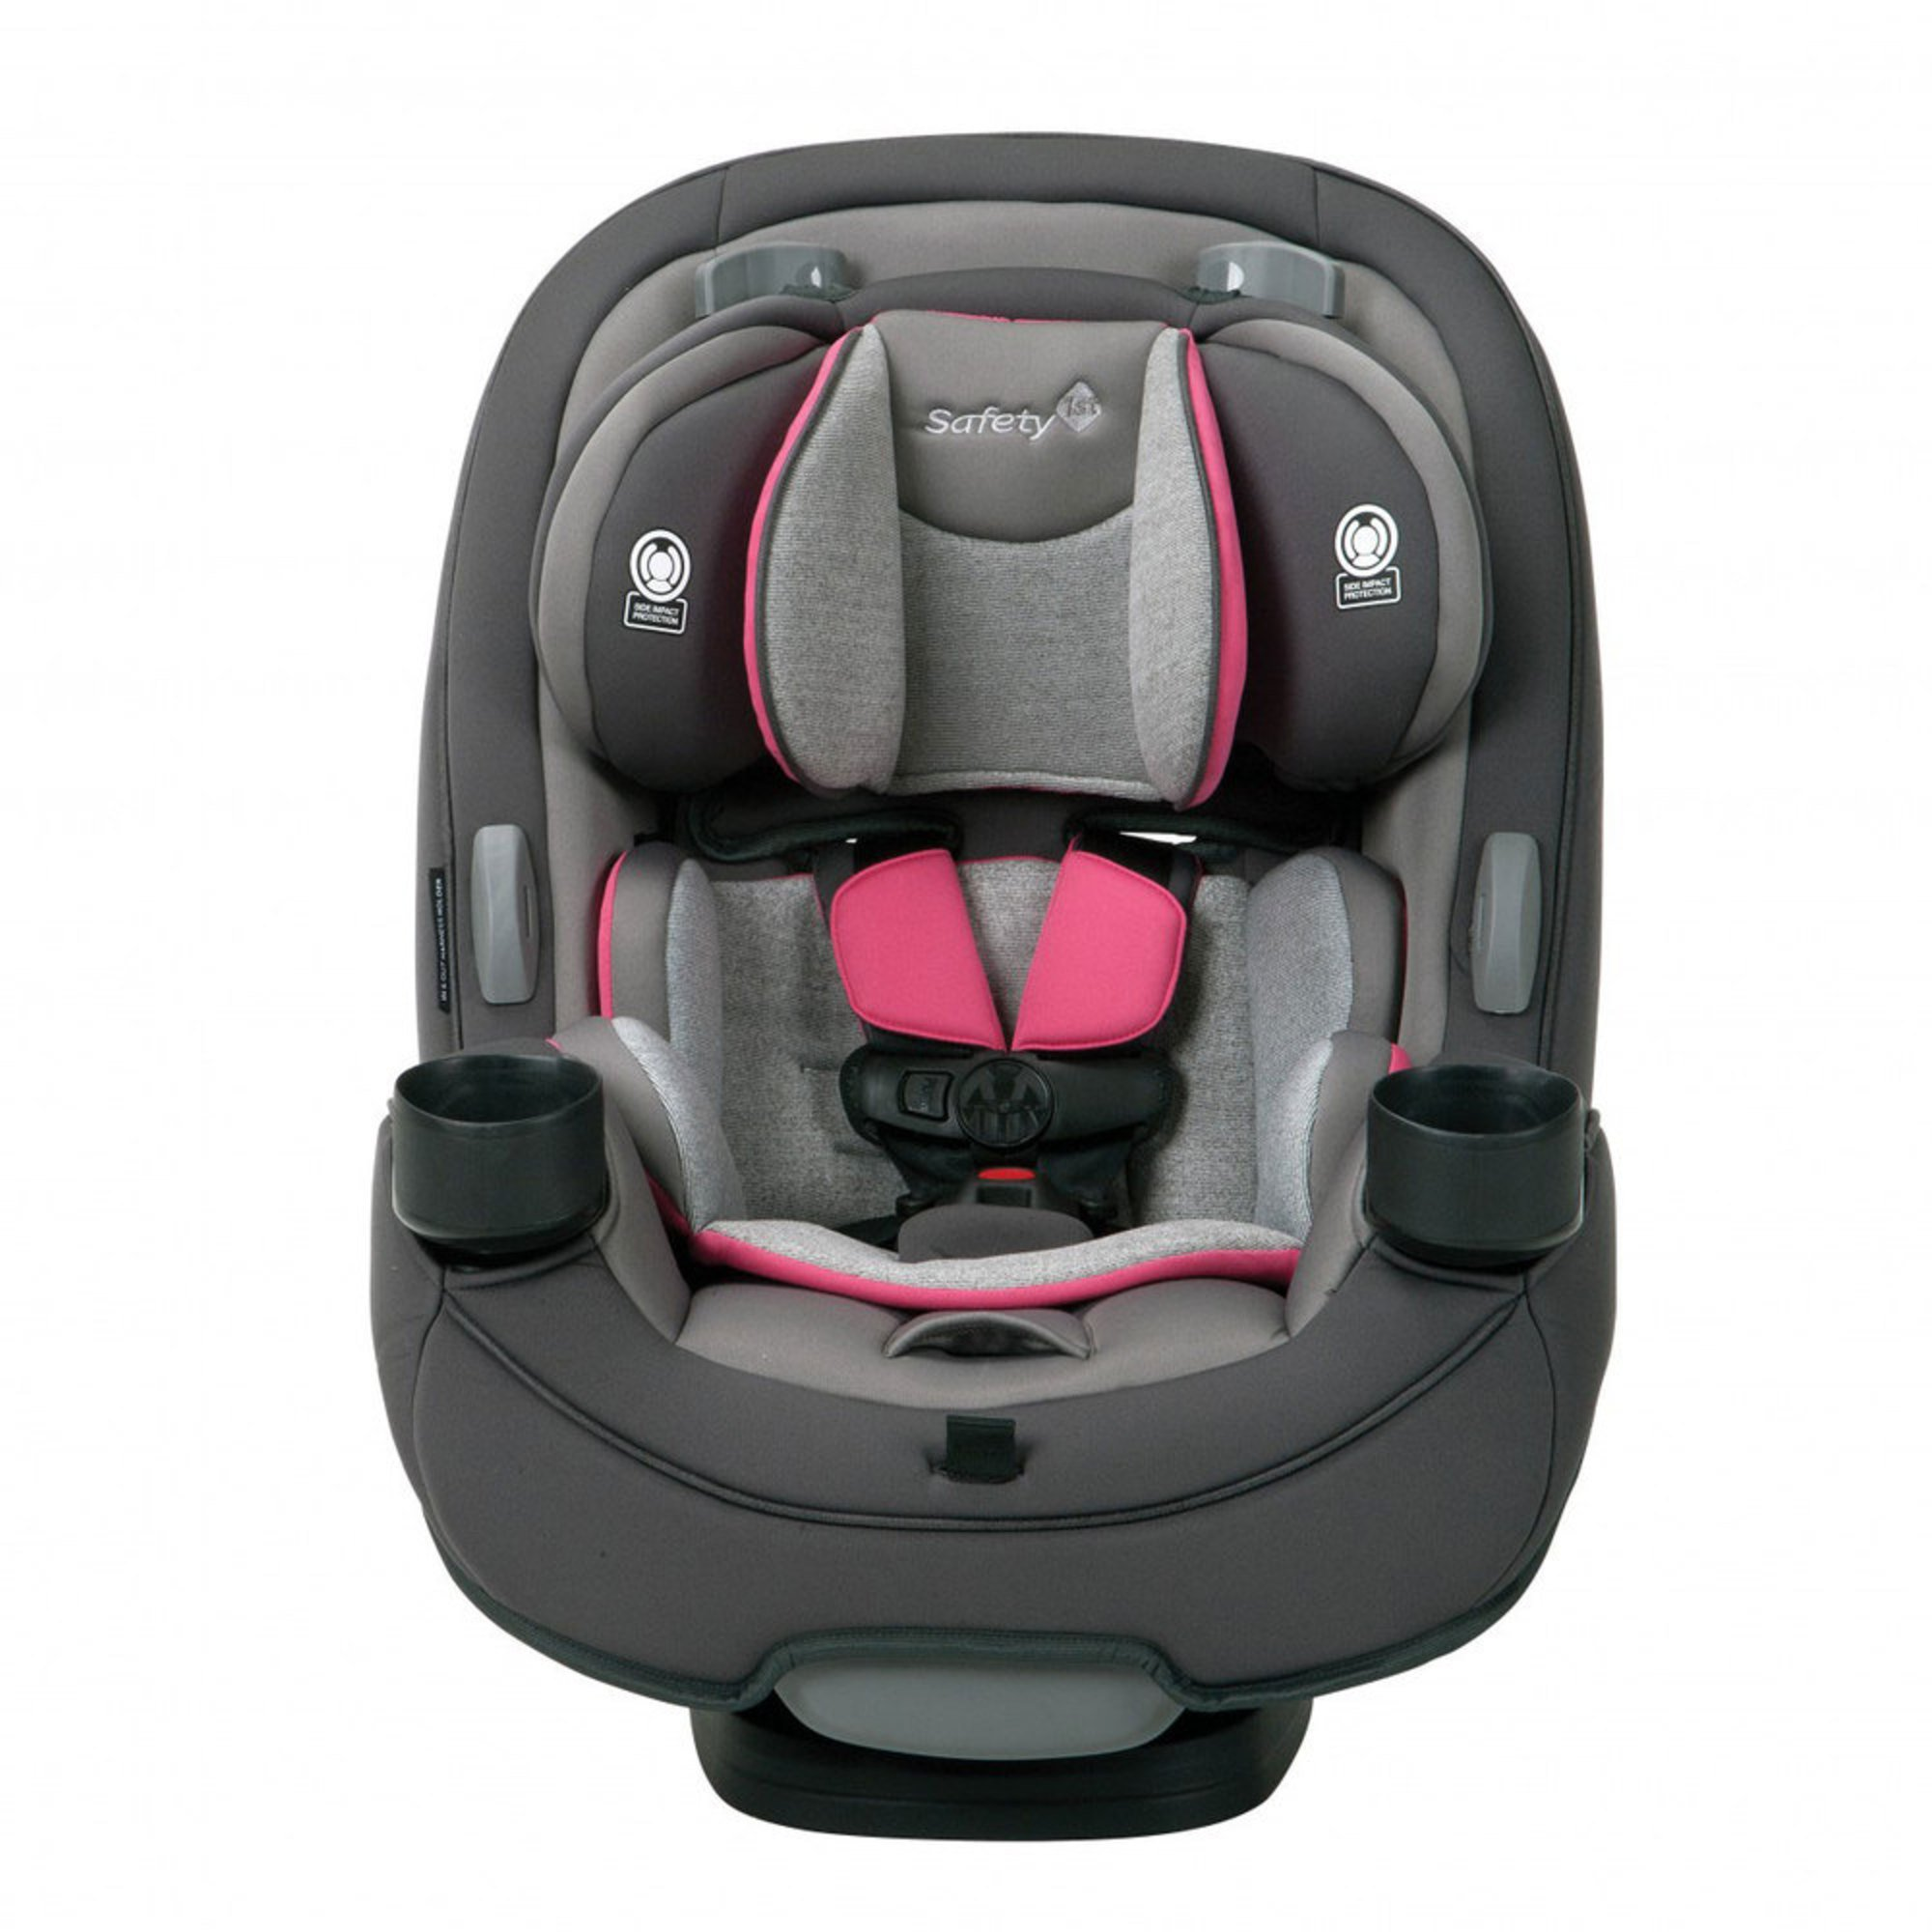 Safety 1st Grow Go Convertible Car Seat Everest Pink